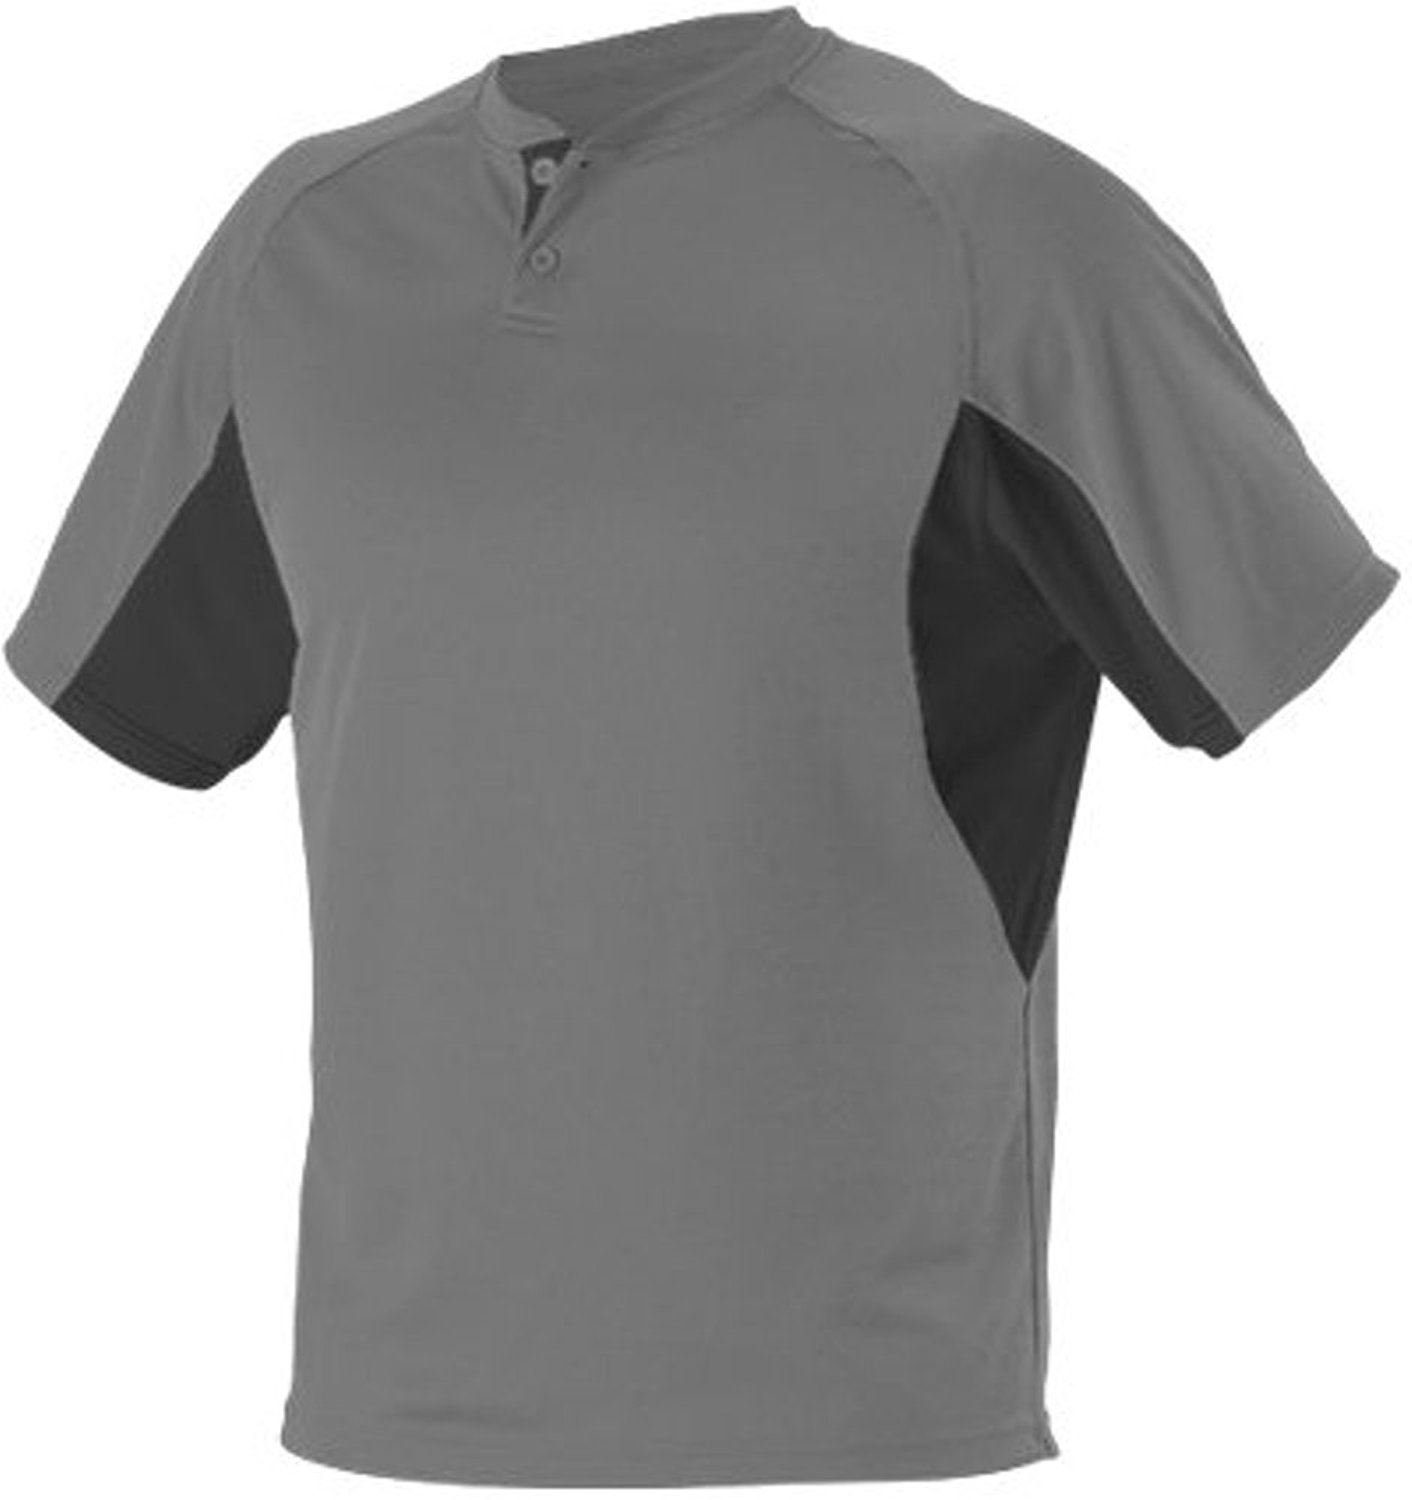 Alleson Baseball Jersey - 2-Button Henley Extreme Mock Mesh - 525 - Adult Medium (M) - Charcoal/Black